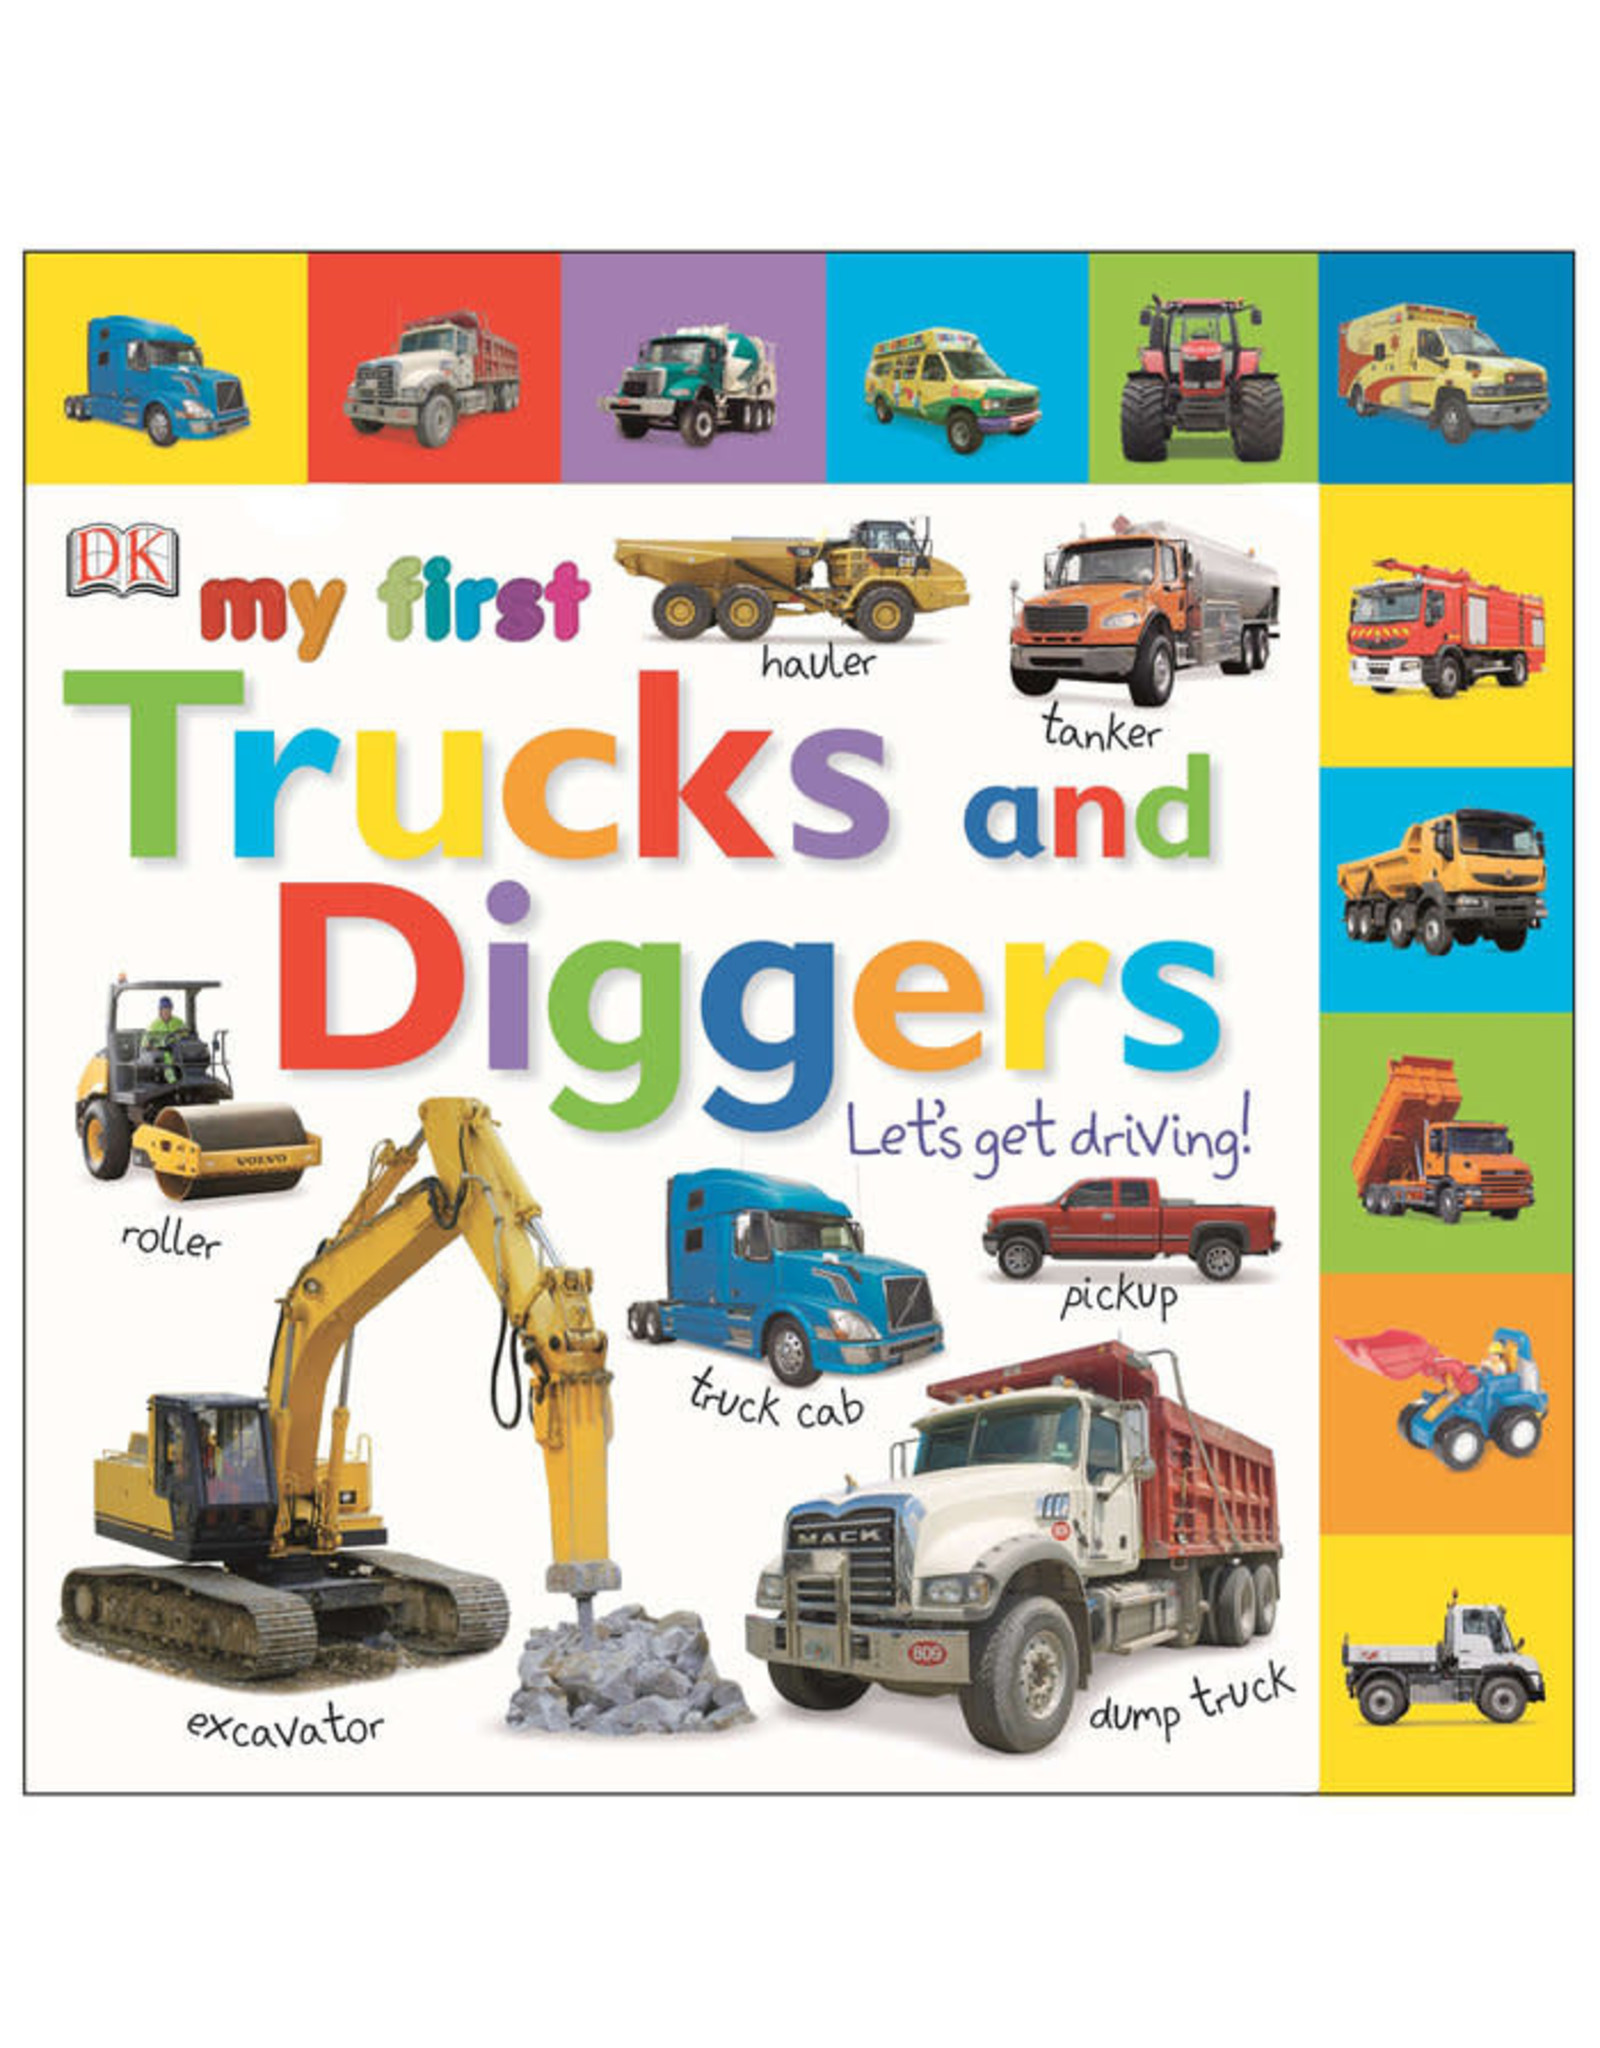 DK Tabbed Board Books: My First Trucks and Diggers